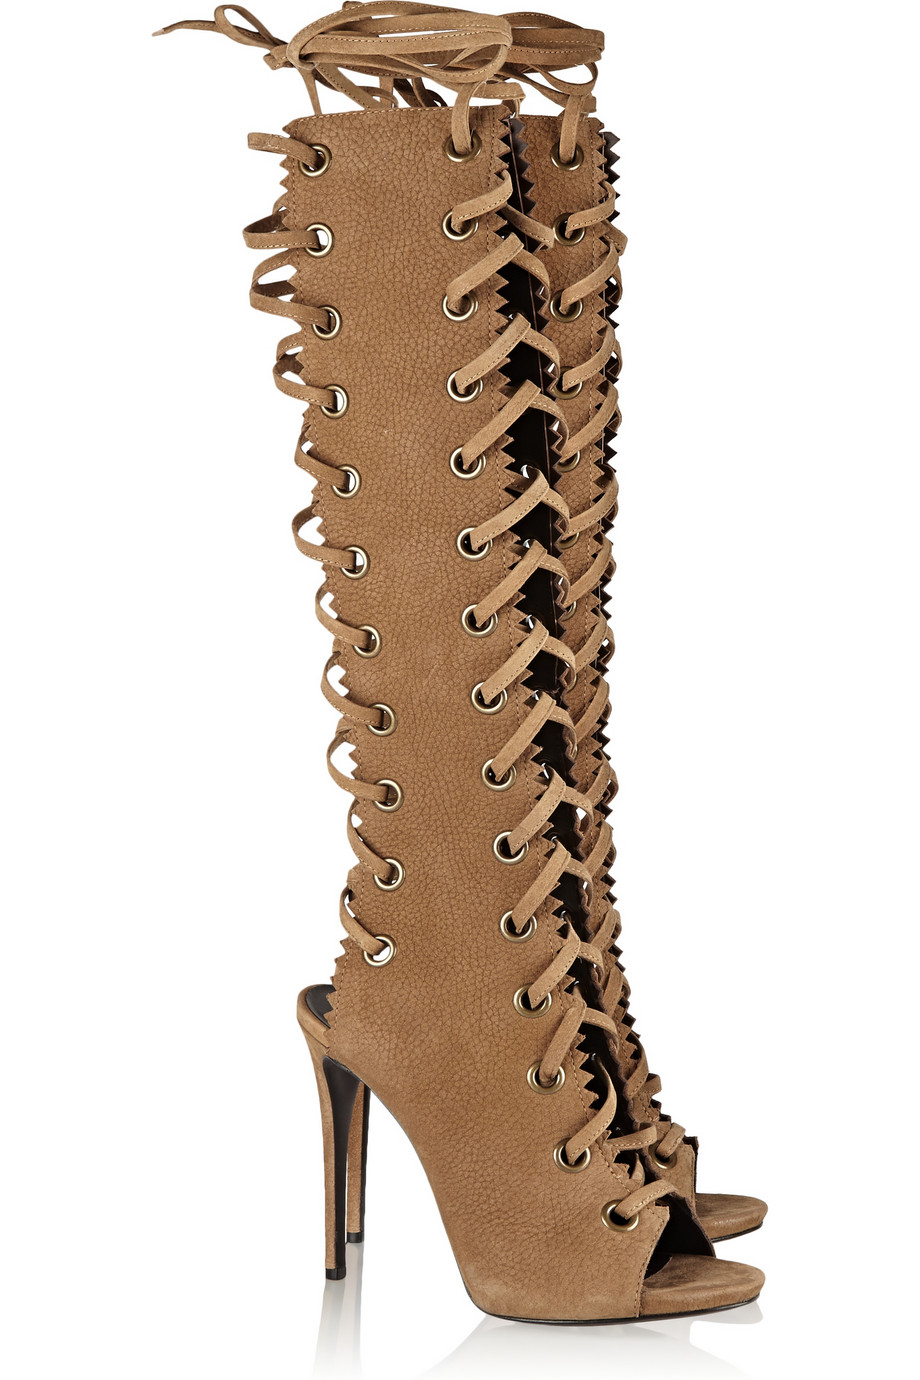 Lyst - Giuseppe Zanotti Textured-Suede Knee Boots in Brown 0851b152e9